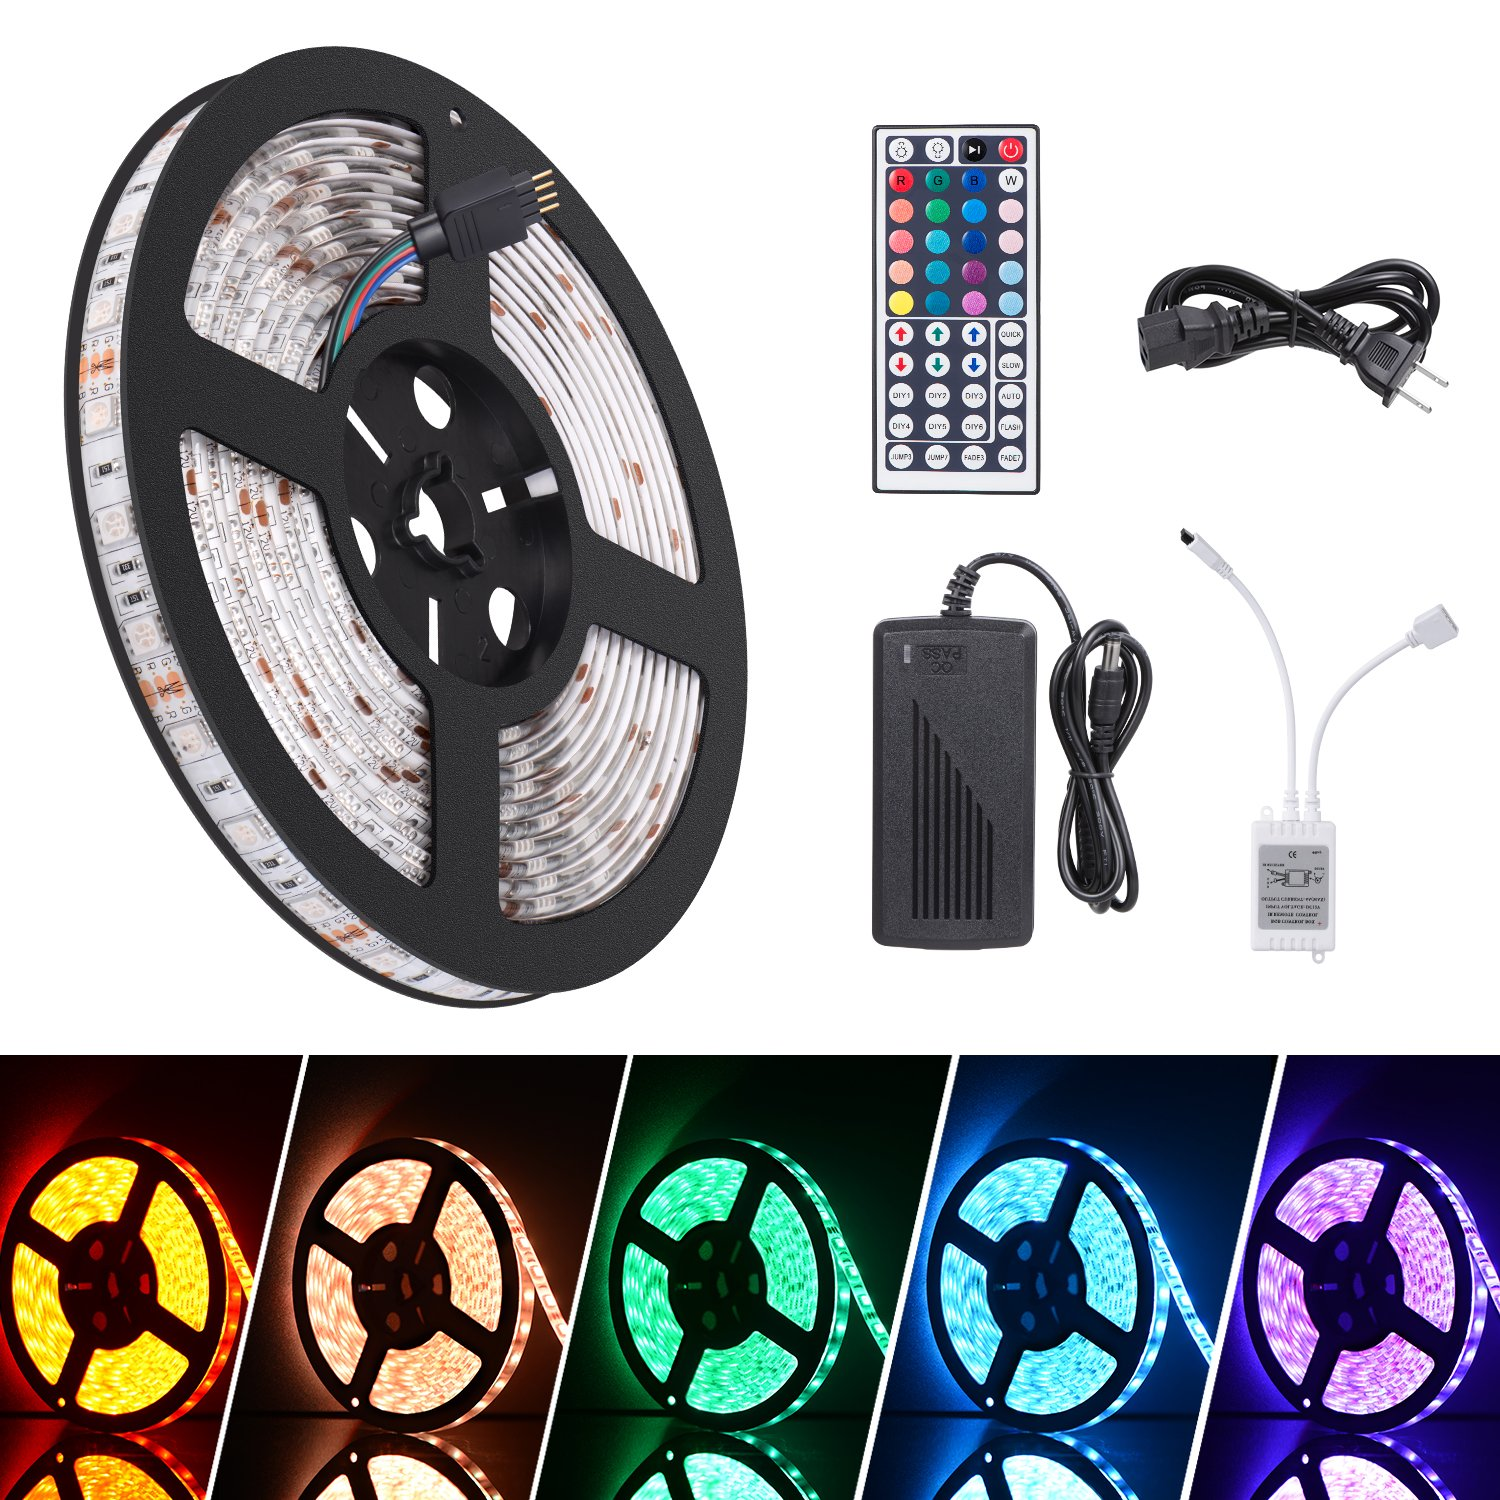 Amazon.com : Boomile LED Light Strip 16.4ft Waterproof SMD 5050 300 ...